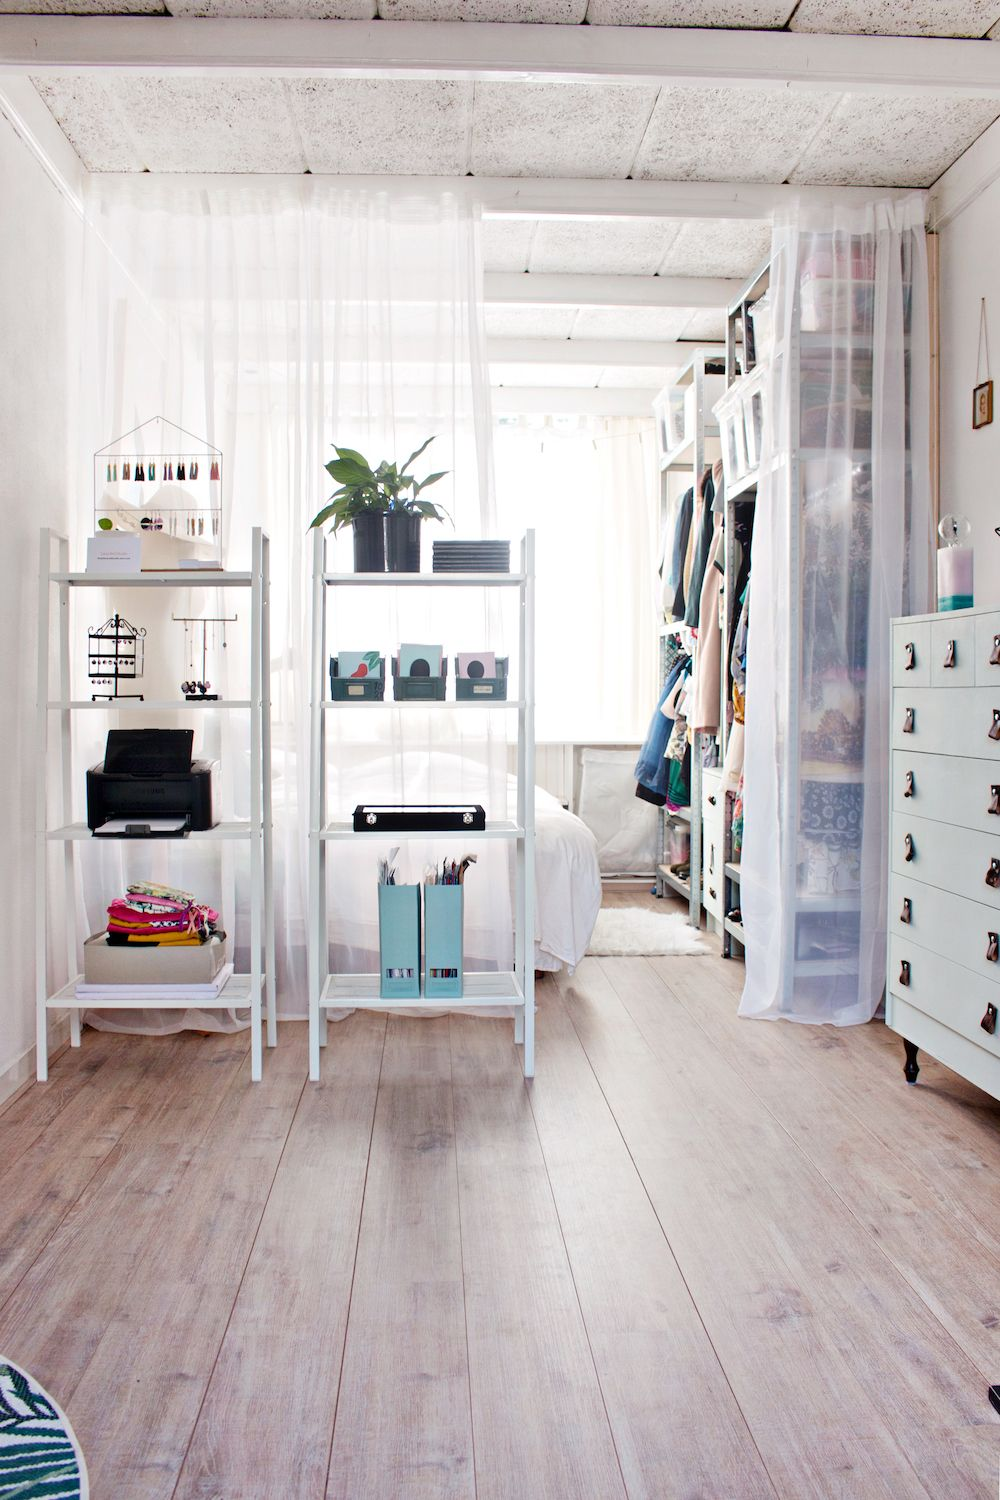 SMALL STUDIO APARTMENT  19 Tips, Tricks and Ideas to Maximize